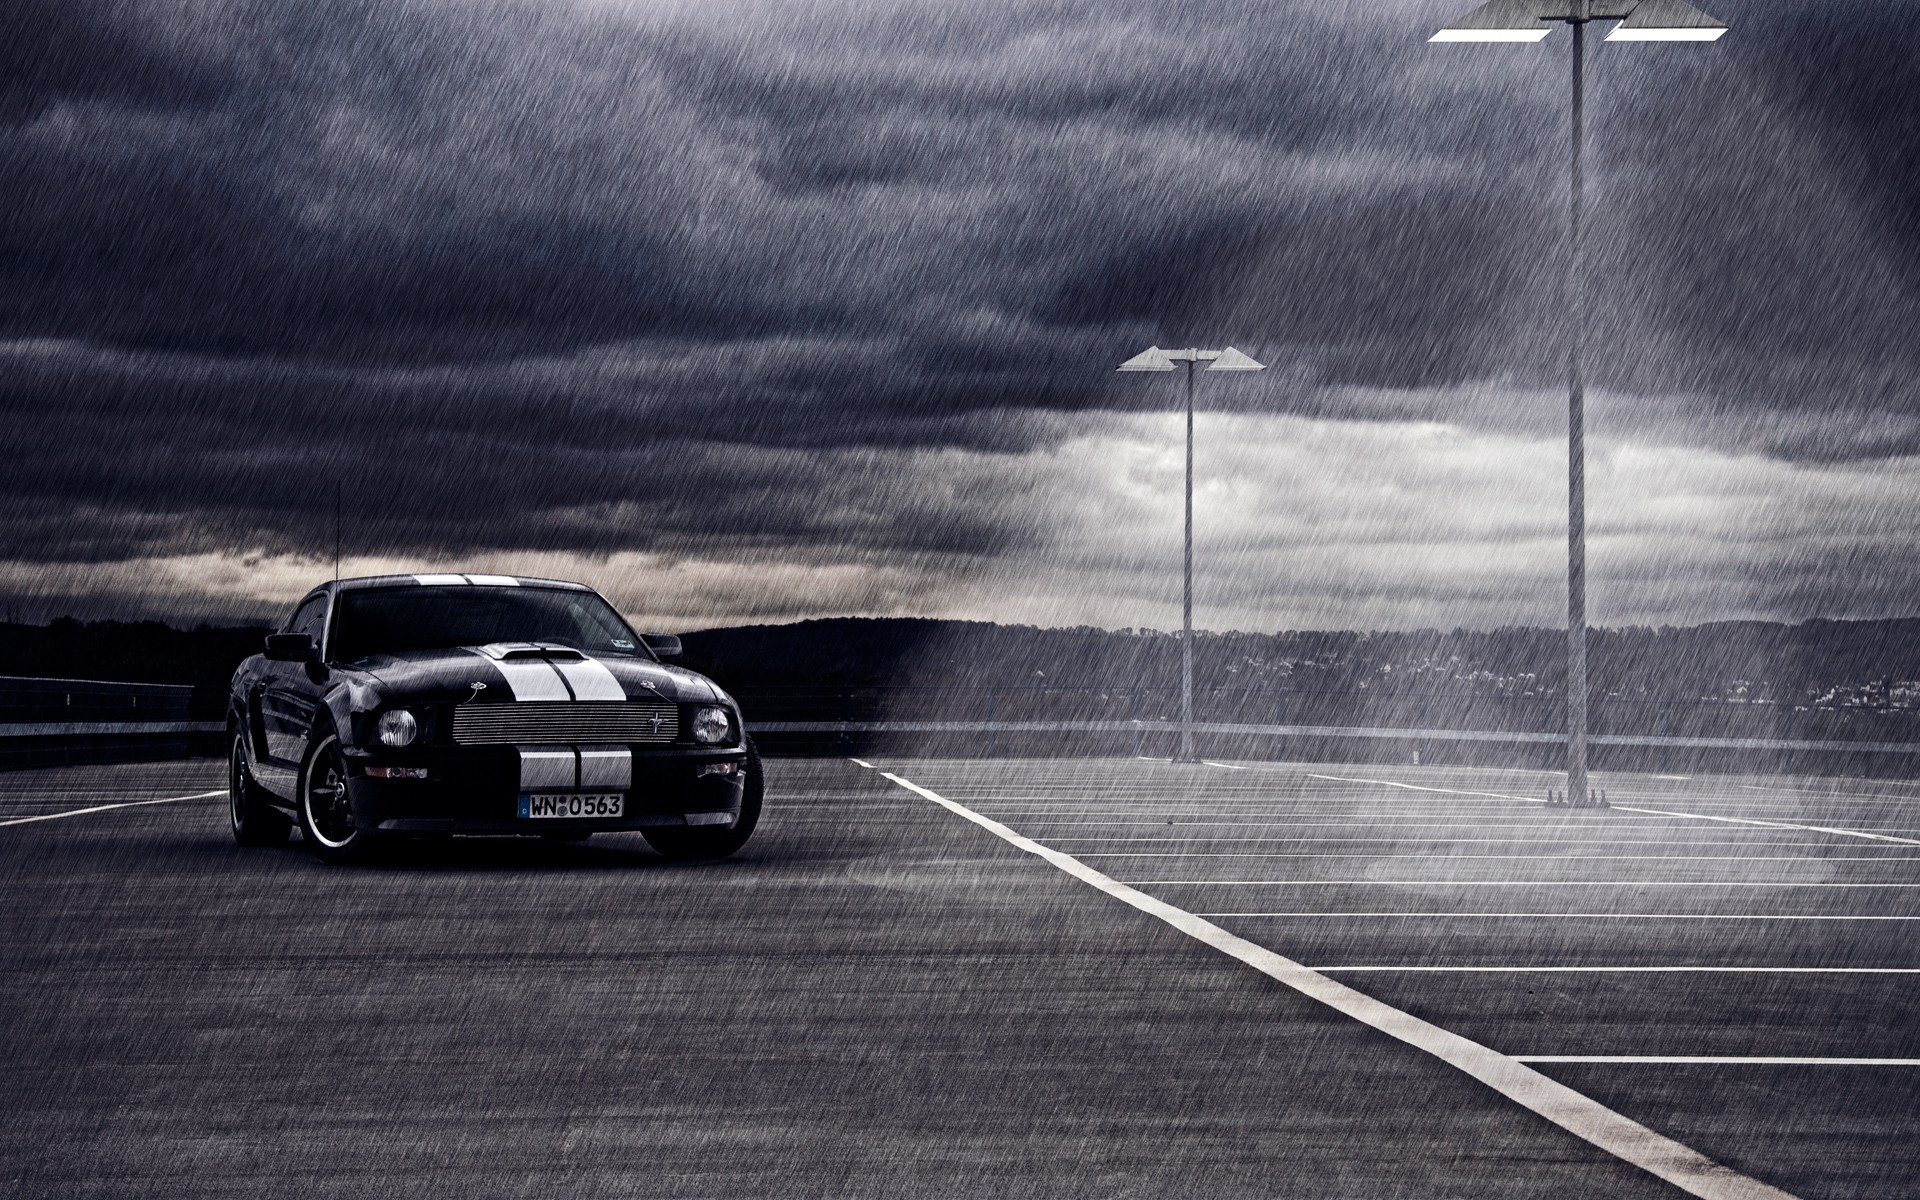 clouds rain cars vehicles Ford mustang HD Wallpaper